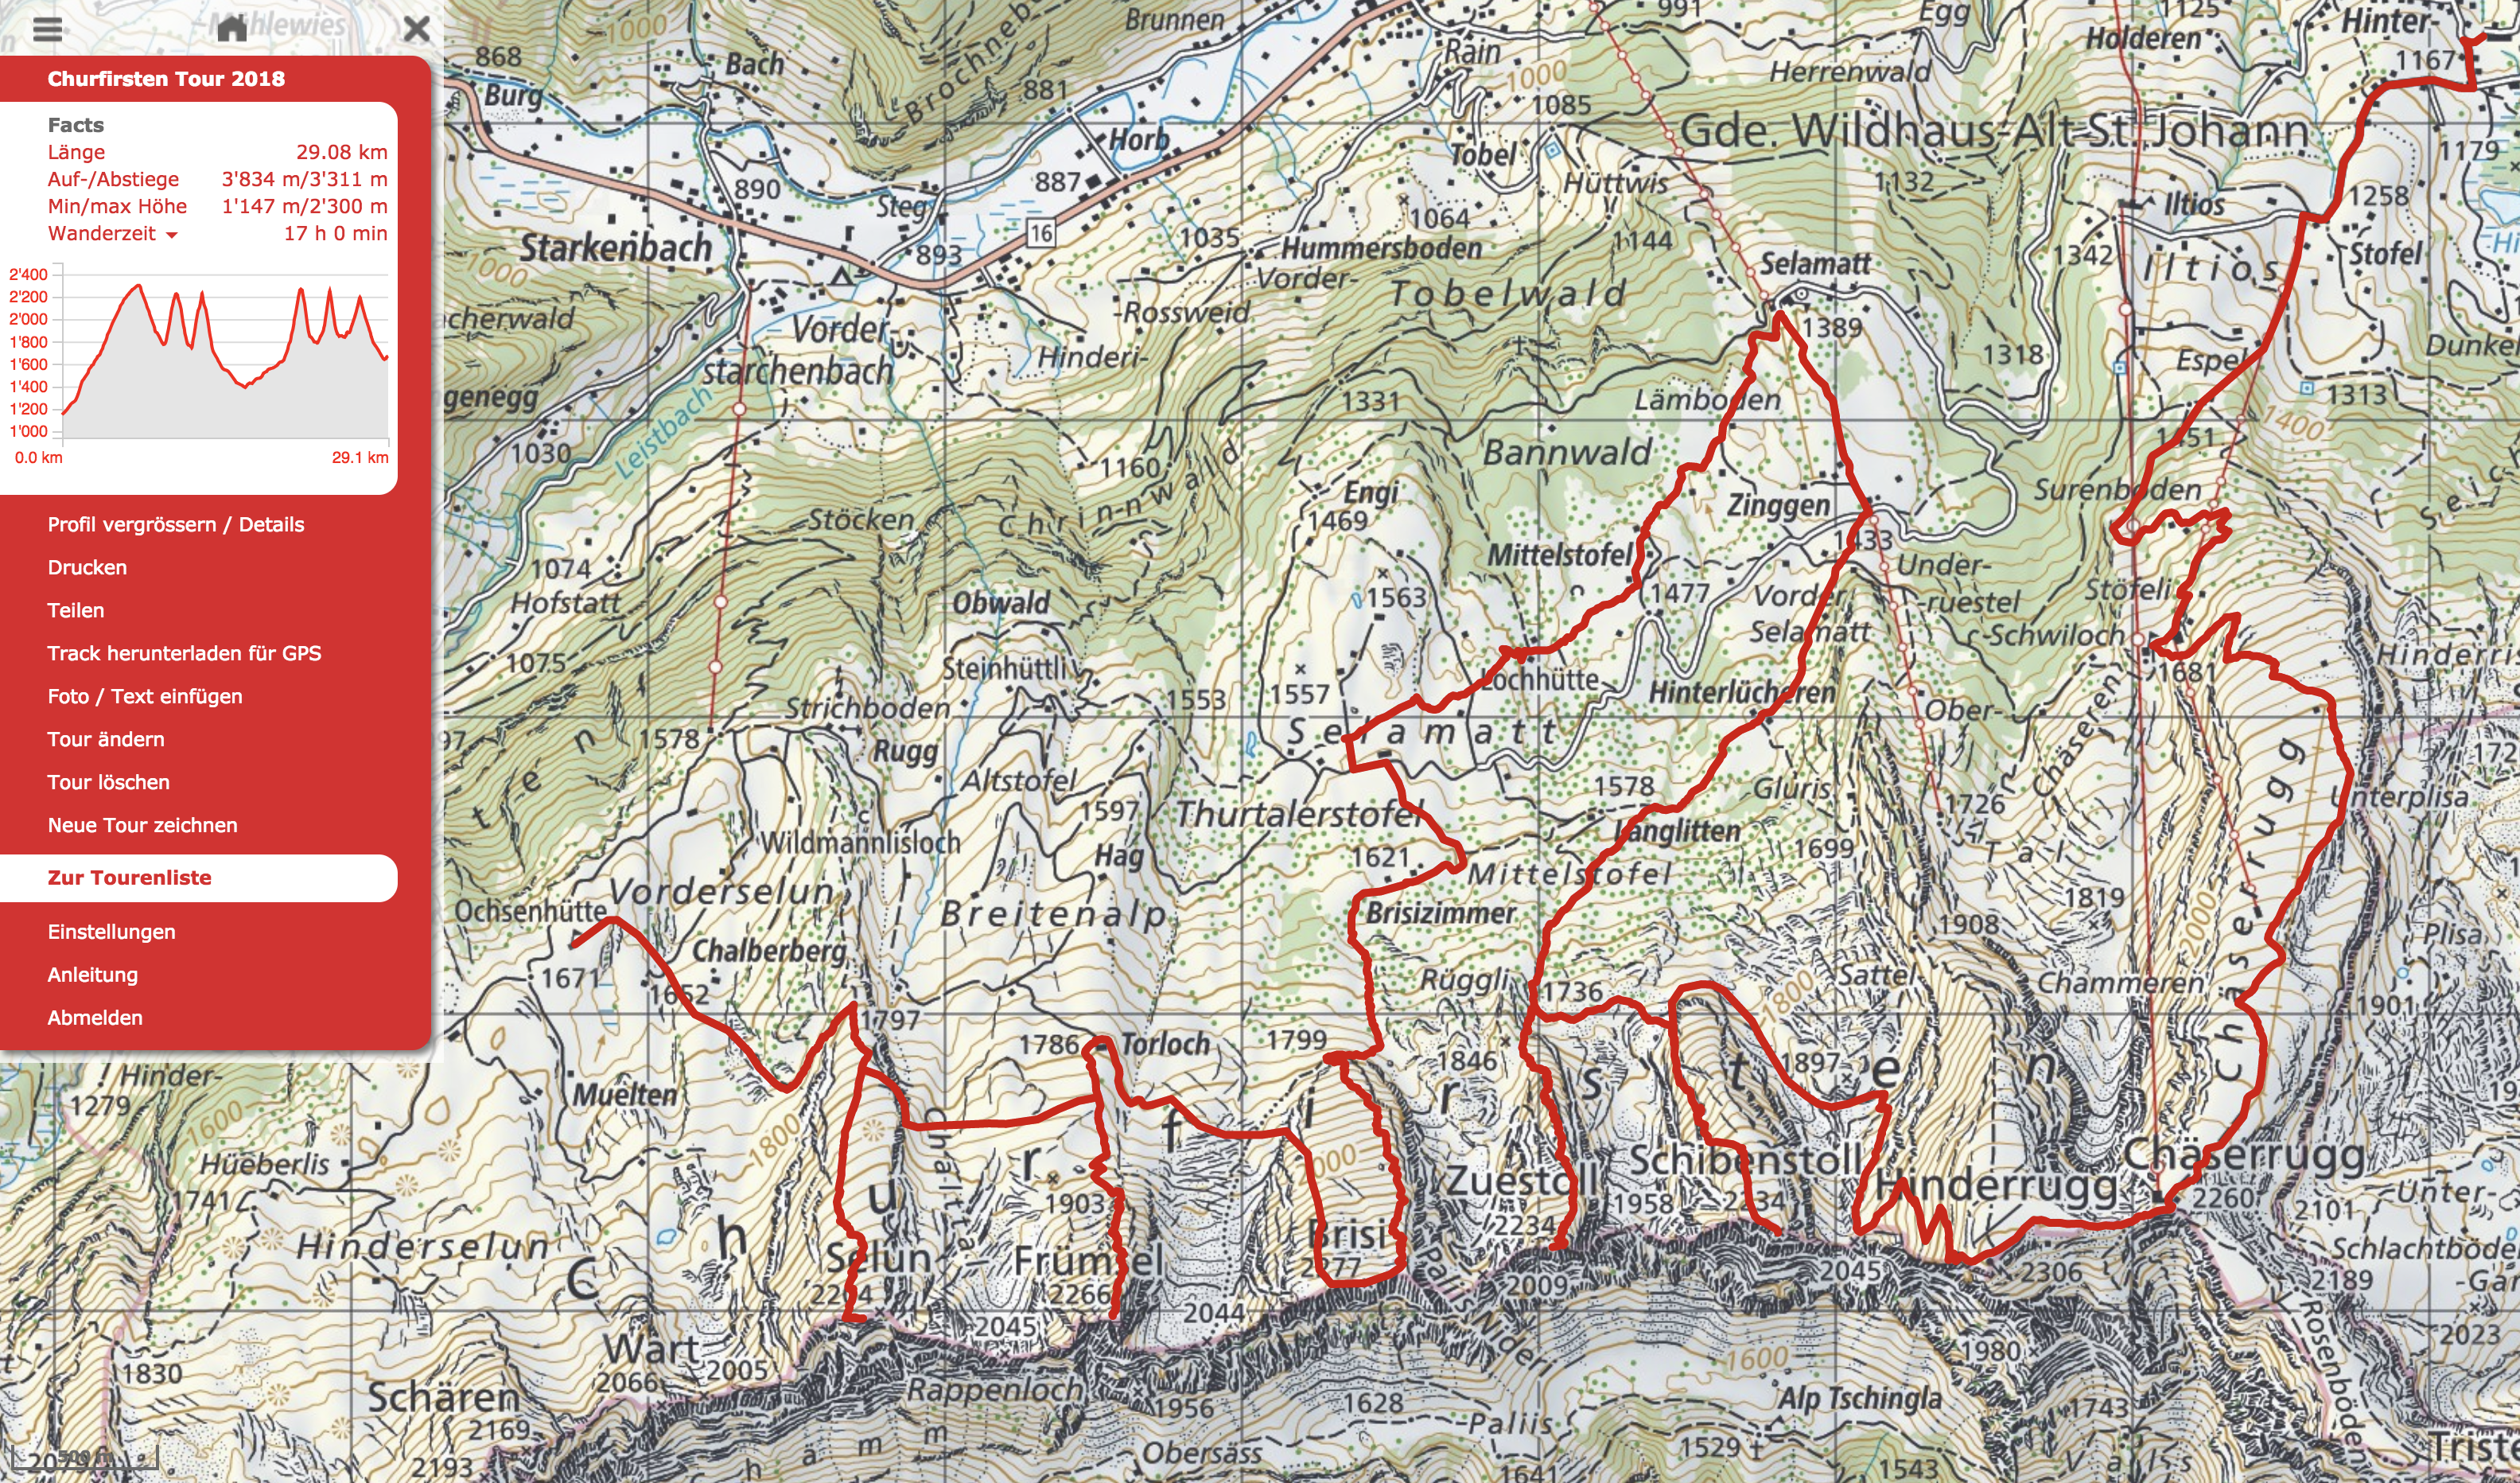 Die Route der Churfirsten Tour